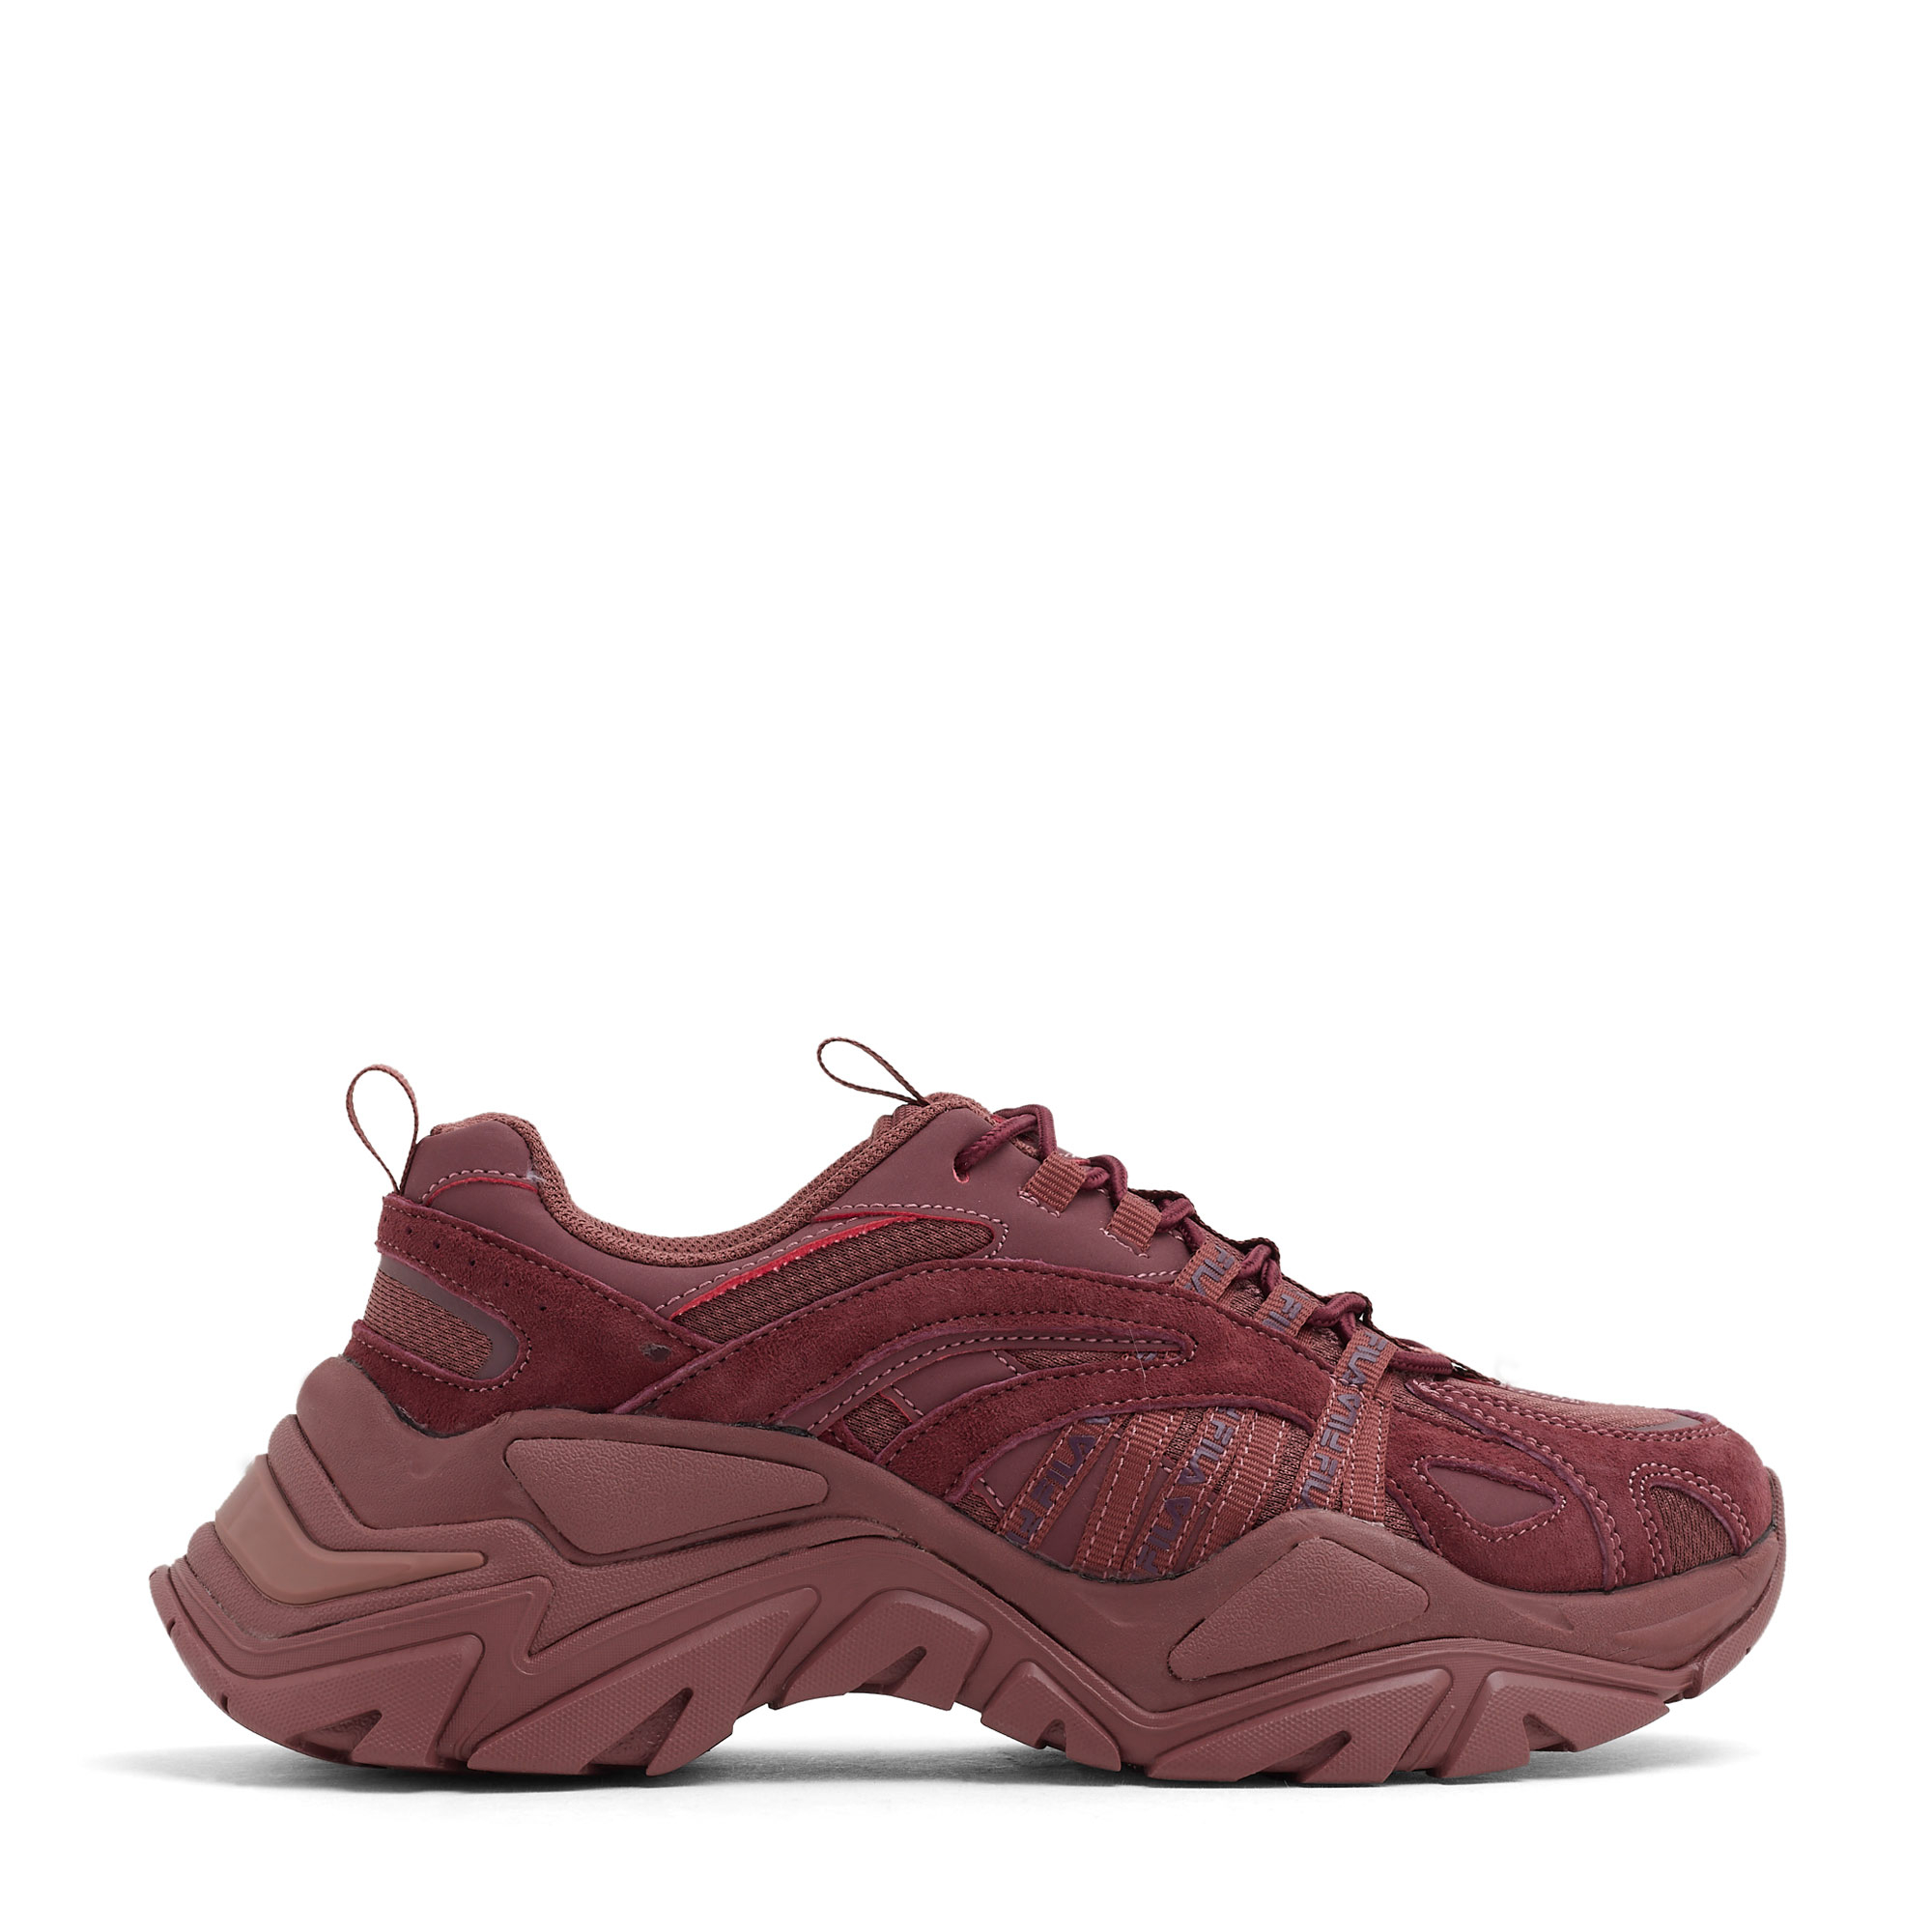 Electrove sneakers